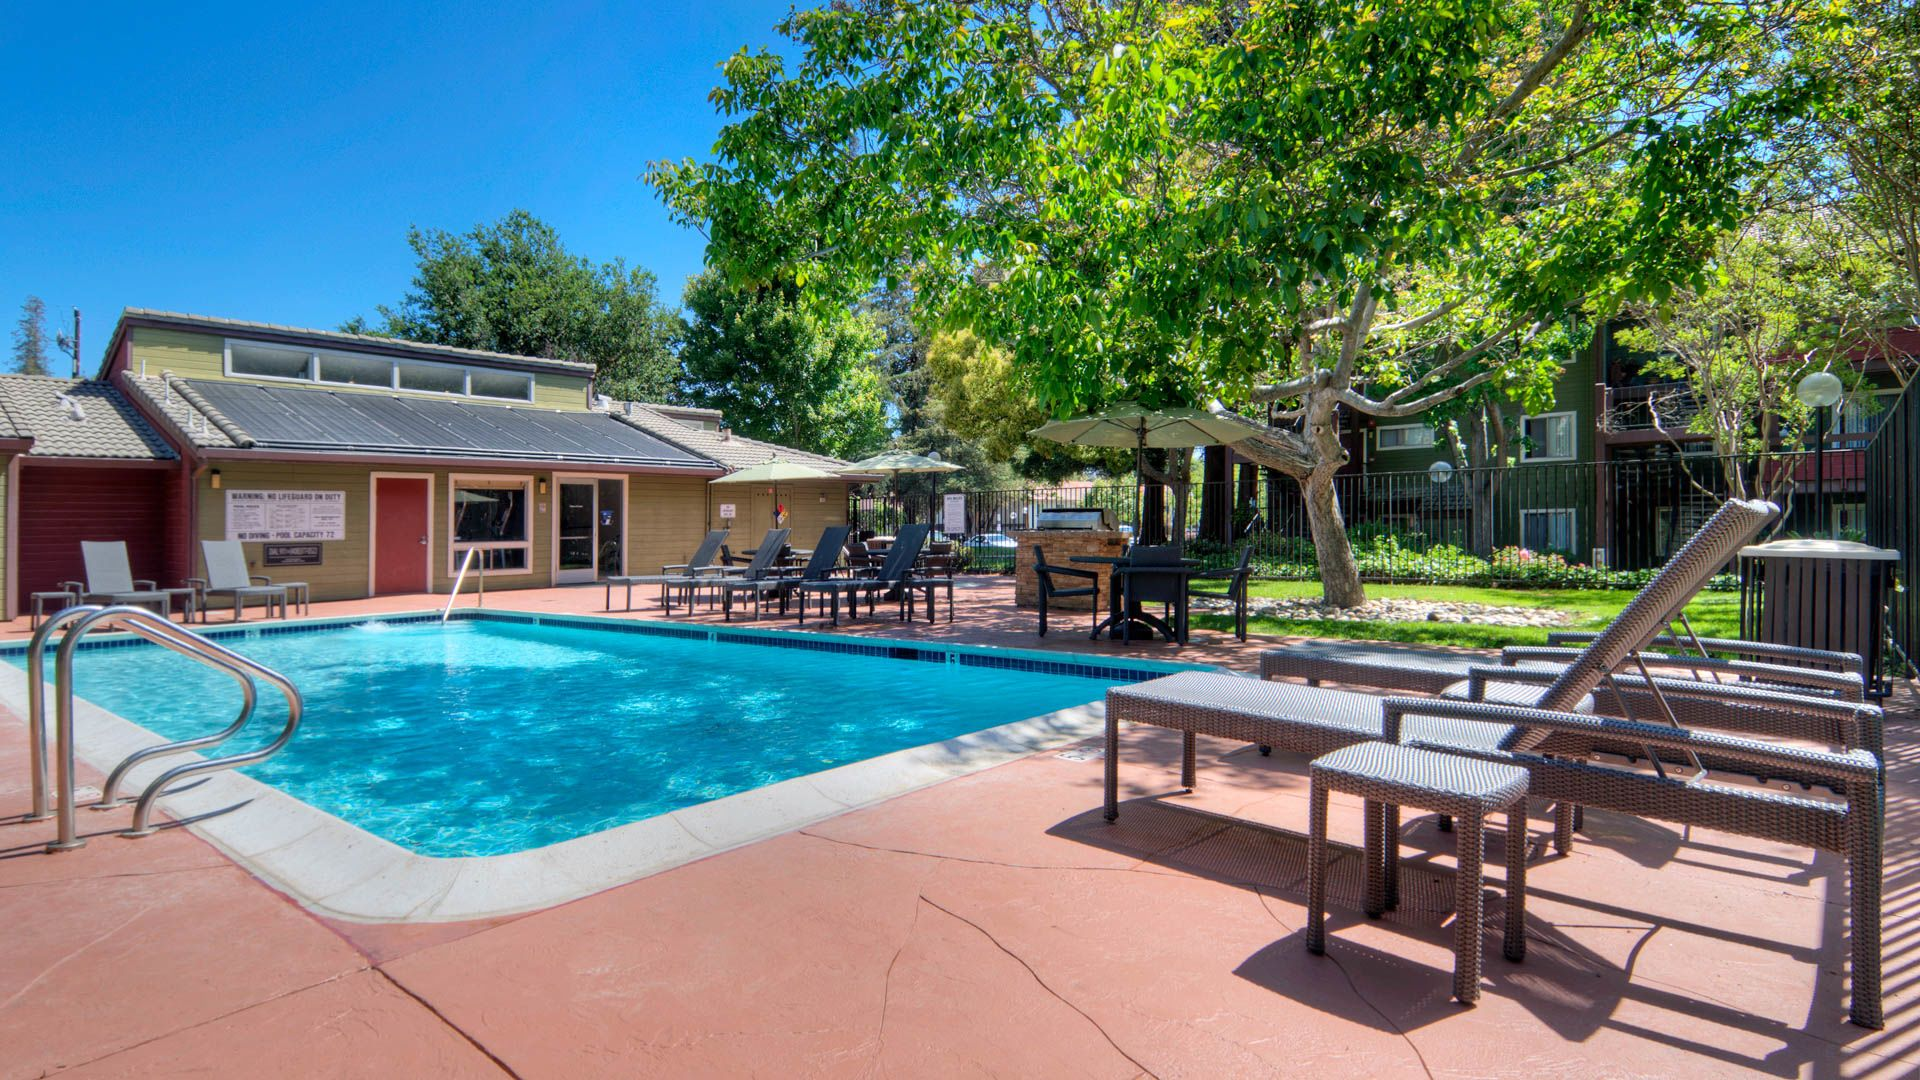 Woodleaf Apartments - Swimming Pool